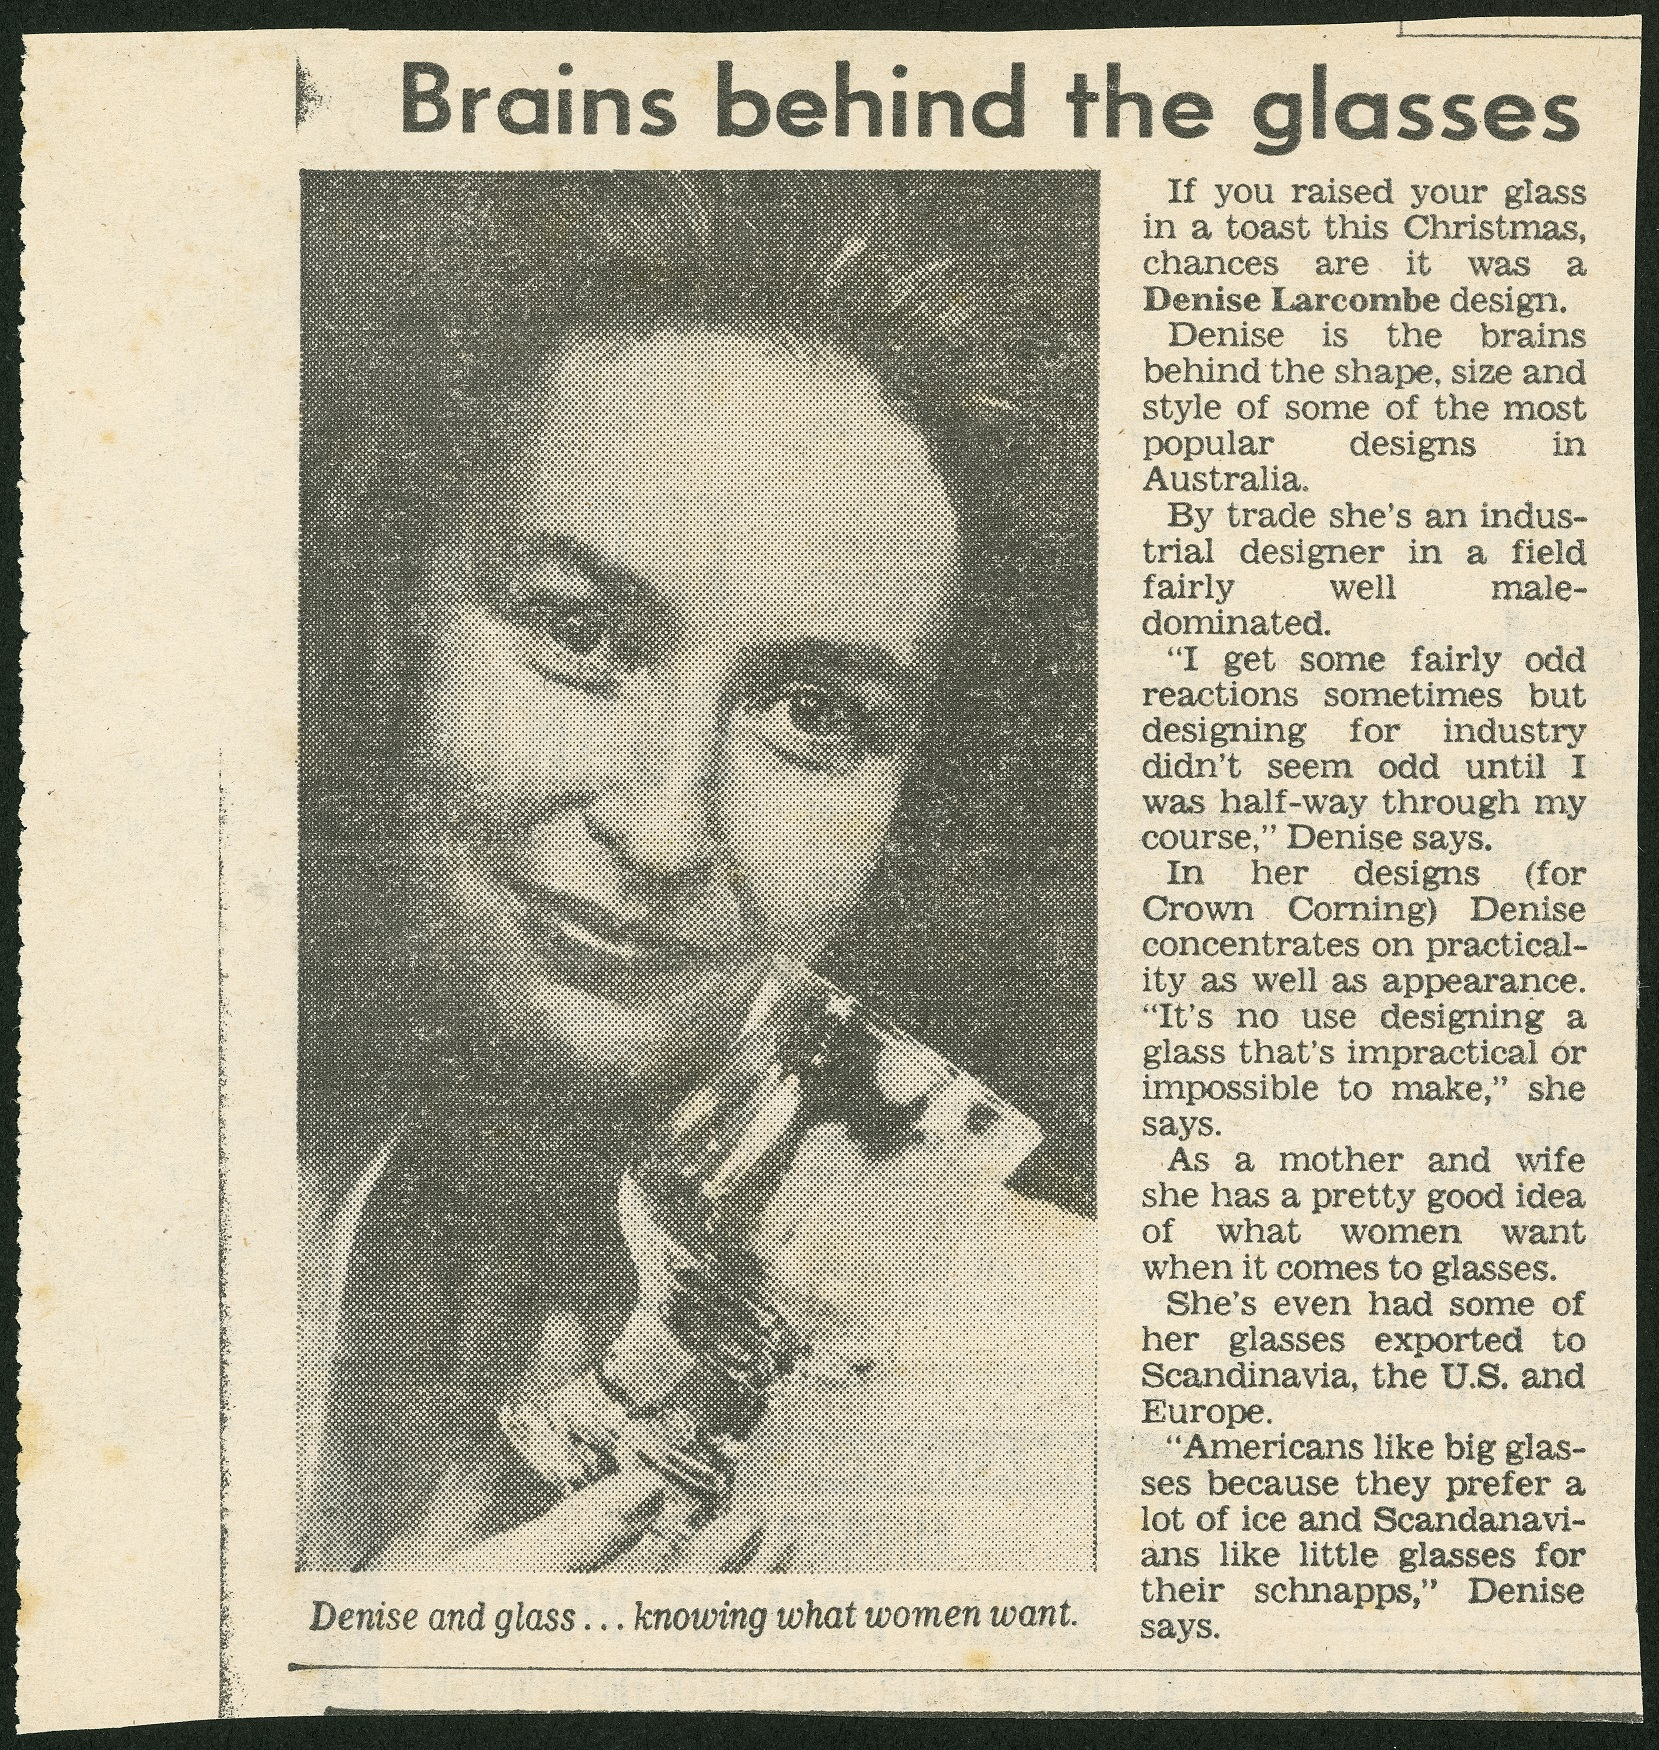 Newspaper article with a photograph of a woman and the title 'Brains behind the glass'.